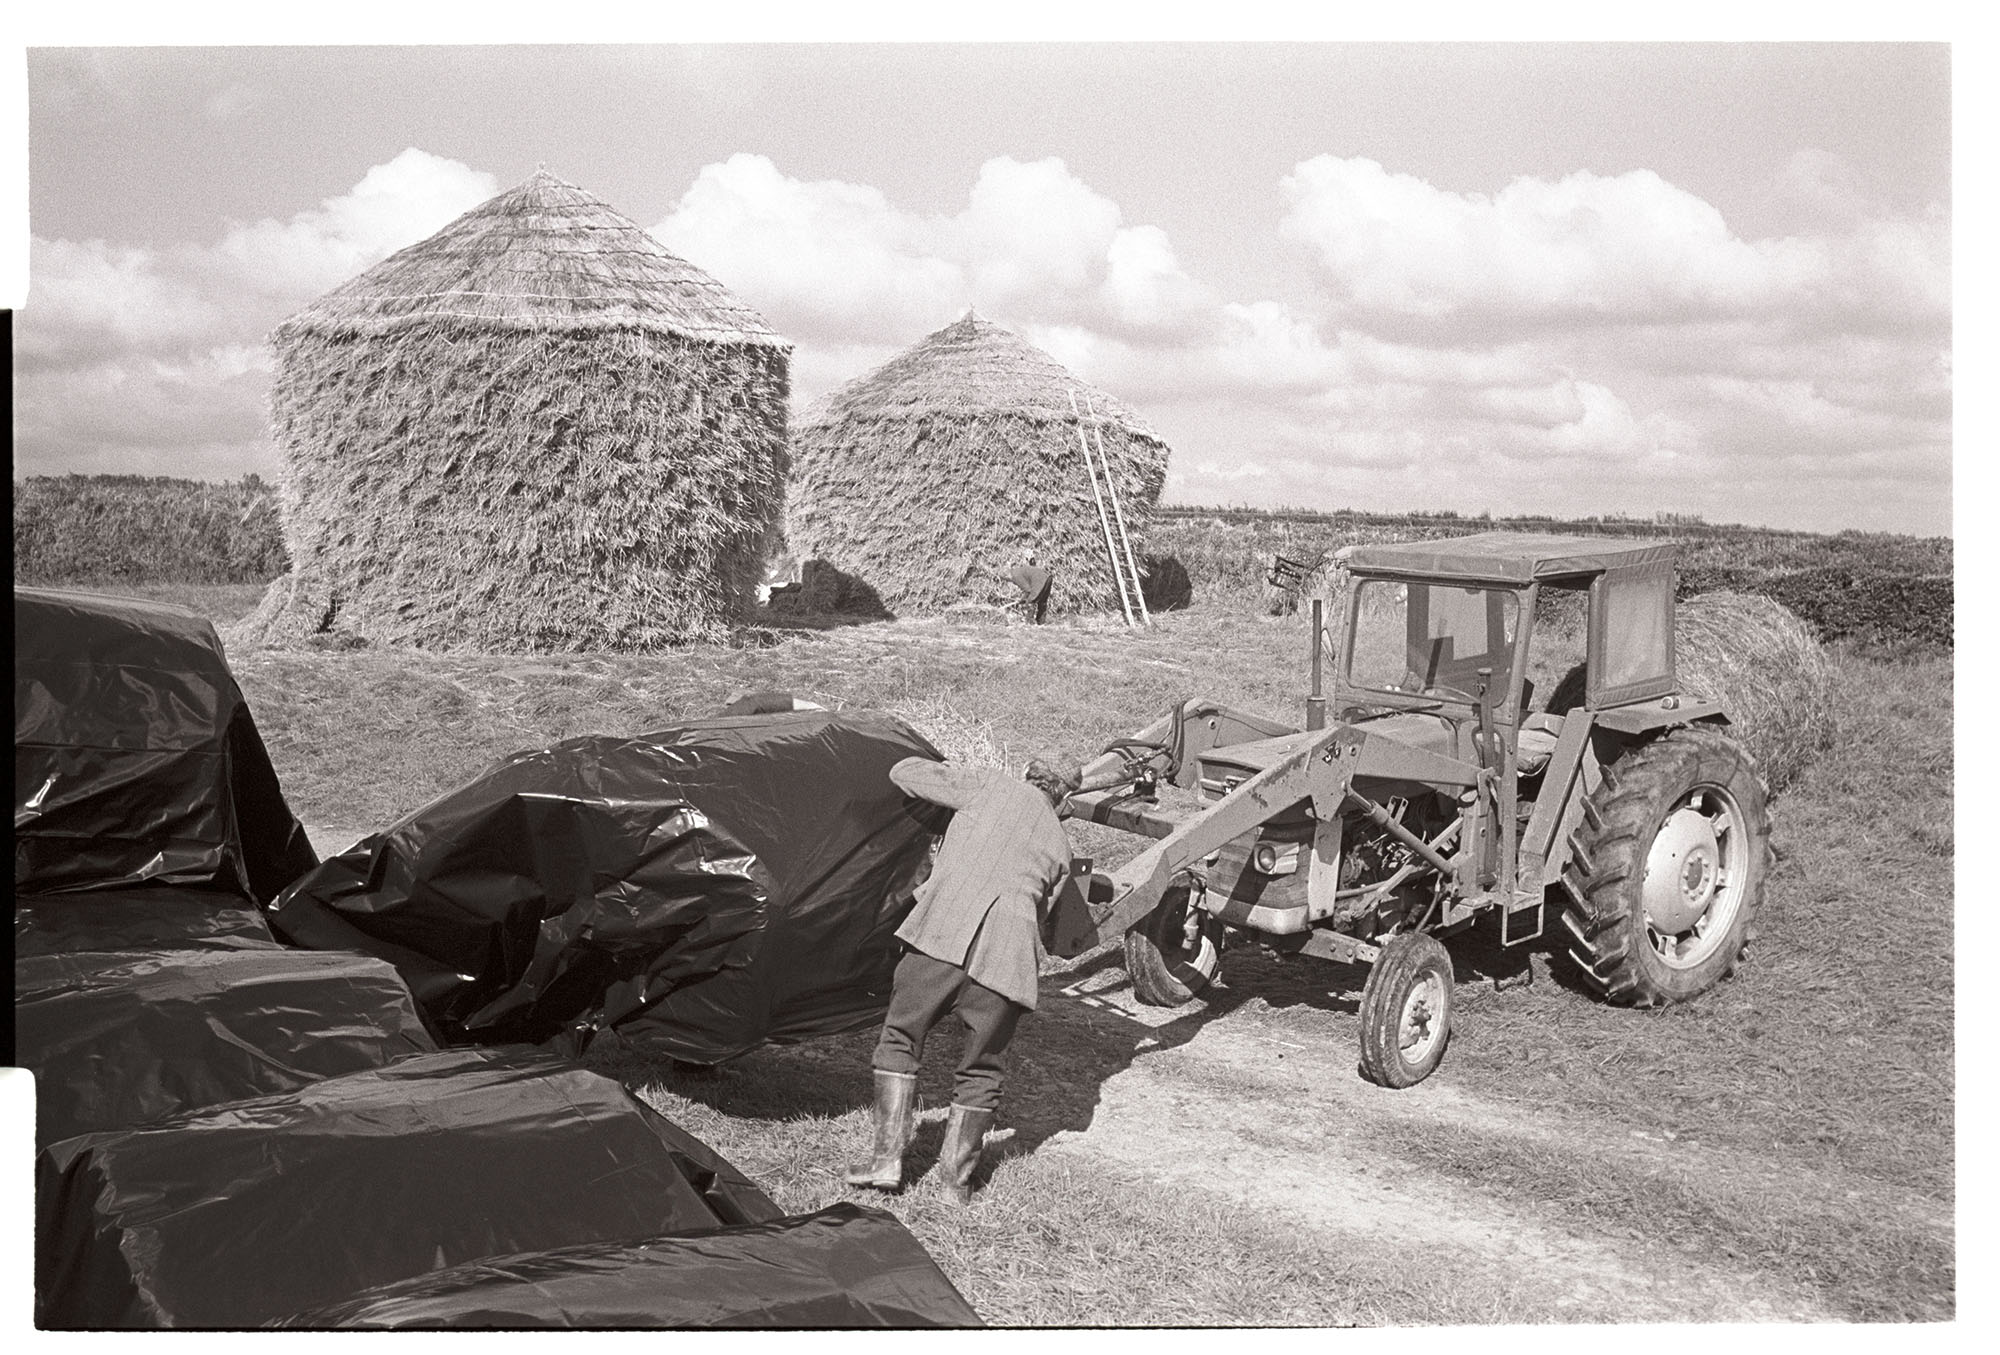 Farmer wrapping large round bales in polythene, round thatched wheat ricks behind. <br /> [Dudley Middleton wrapping hay bales in polythene in a field at Westacott, Riddlecombe. The bales are on a fork lift attached to a tractor. Two thatched wheat ricks are in the background. A ladder is propped against one of the ricks.]